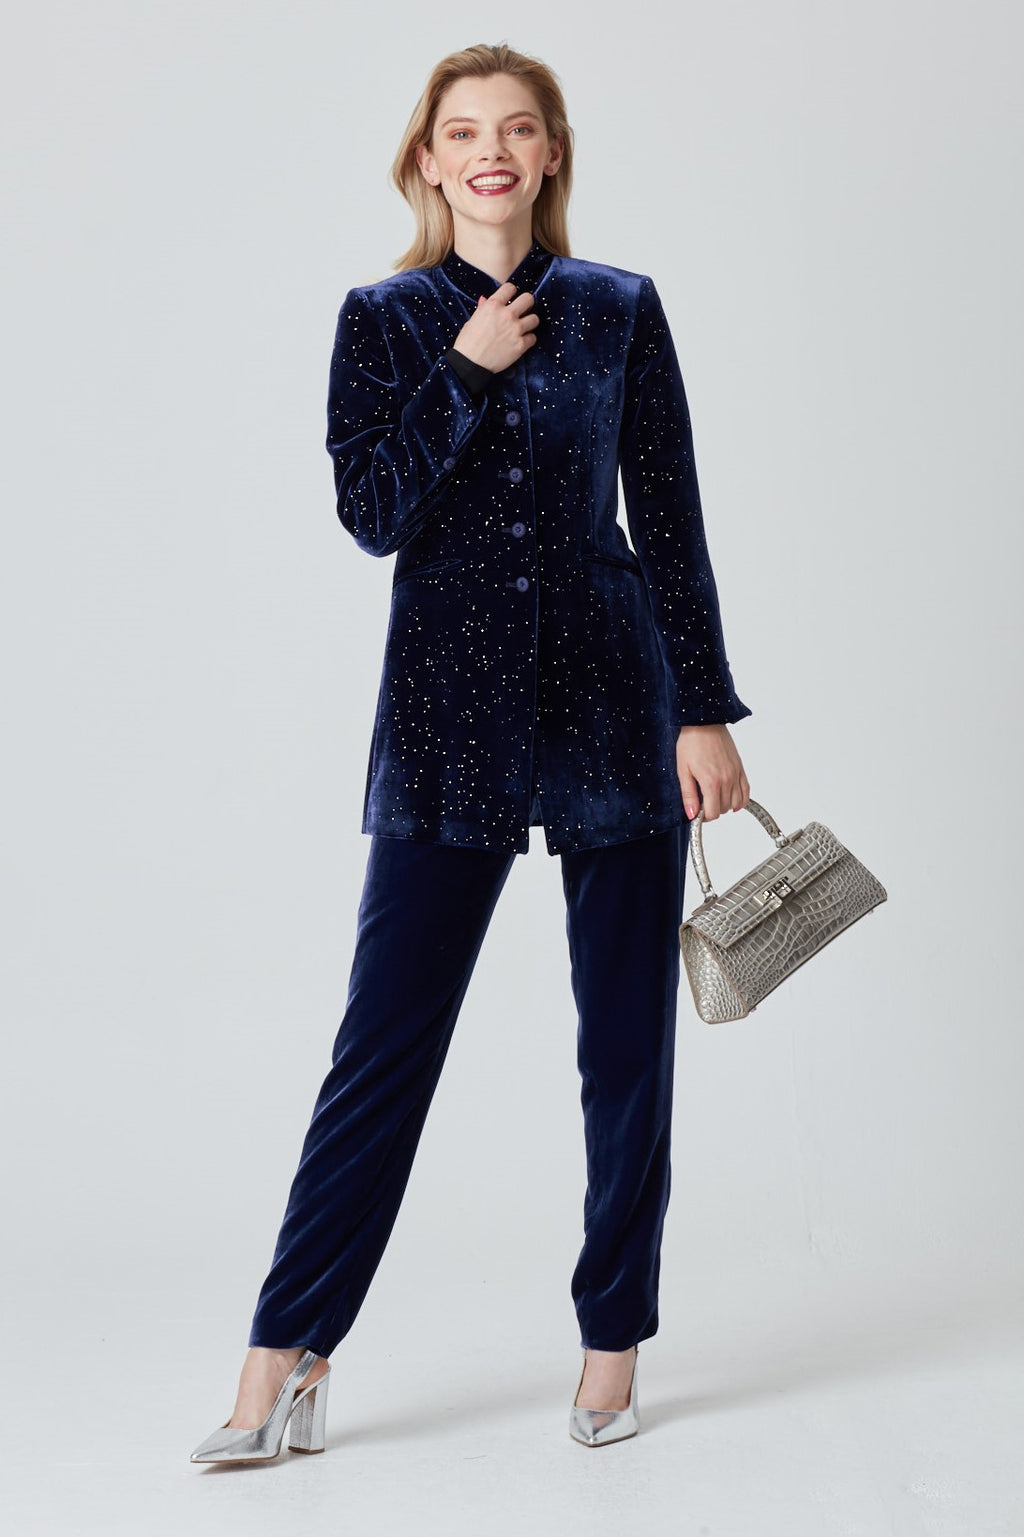 Velvet Jacket in Navy Starlight Print - Zoe